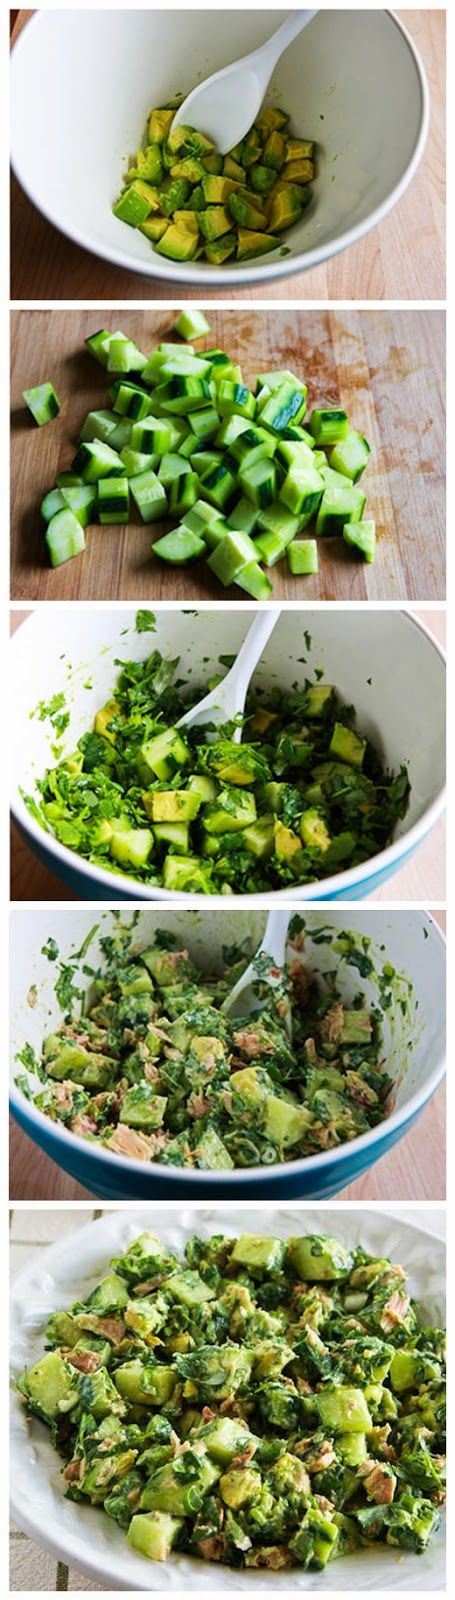 Cucumber Avocado Salad with Tuna, Cilantro, and Lime